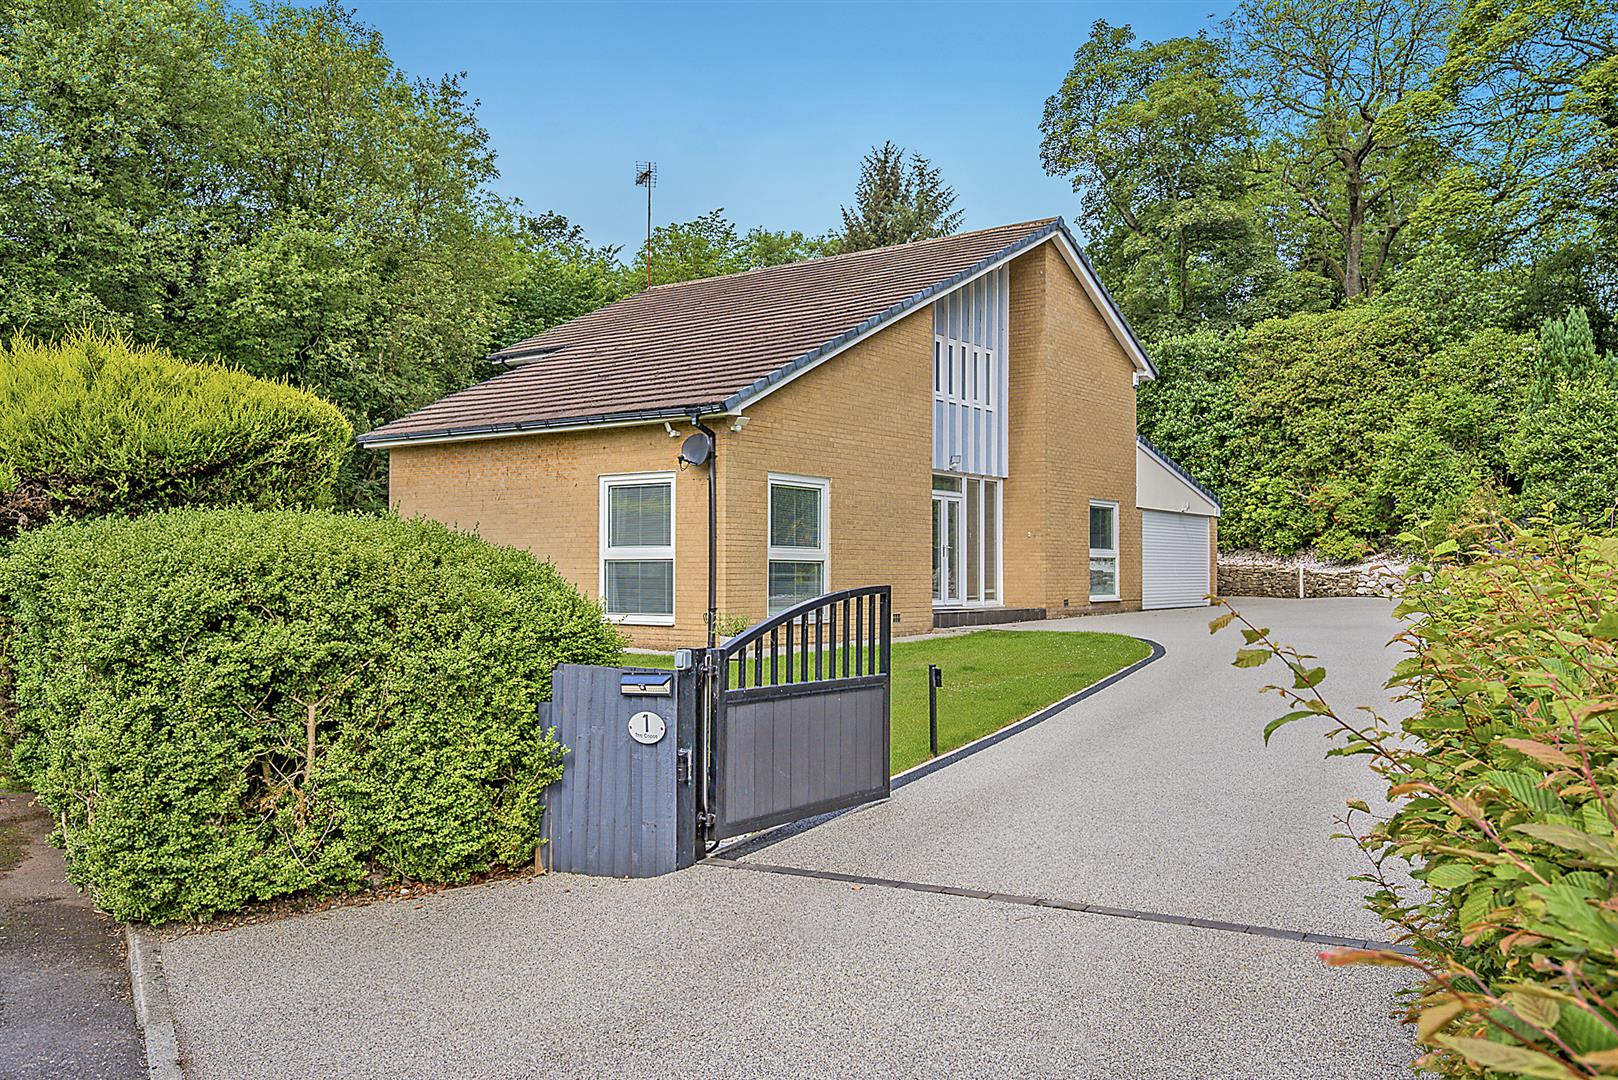 4 bedroom detached house For Sale in Bolton - DSC_6417..jpg.